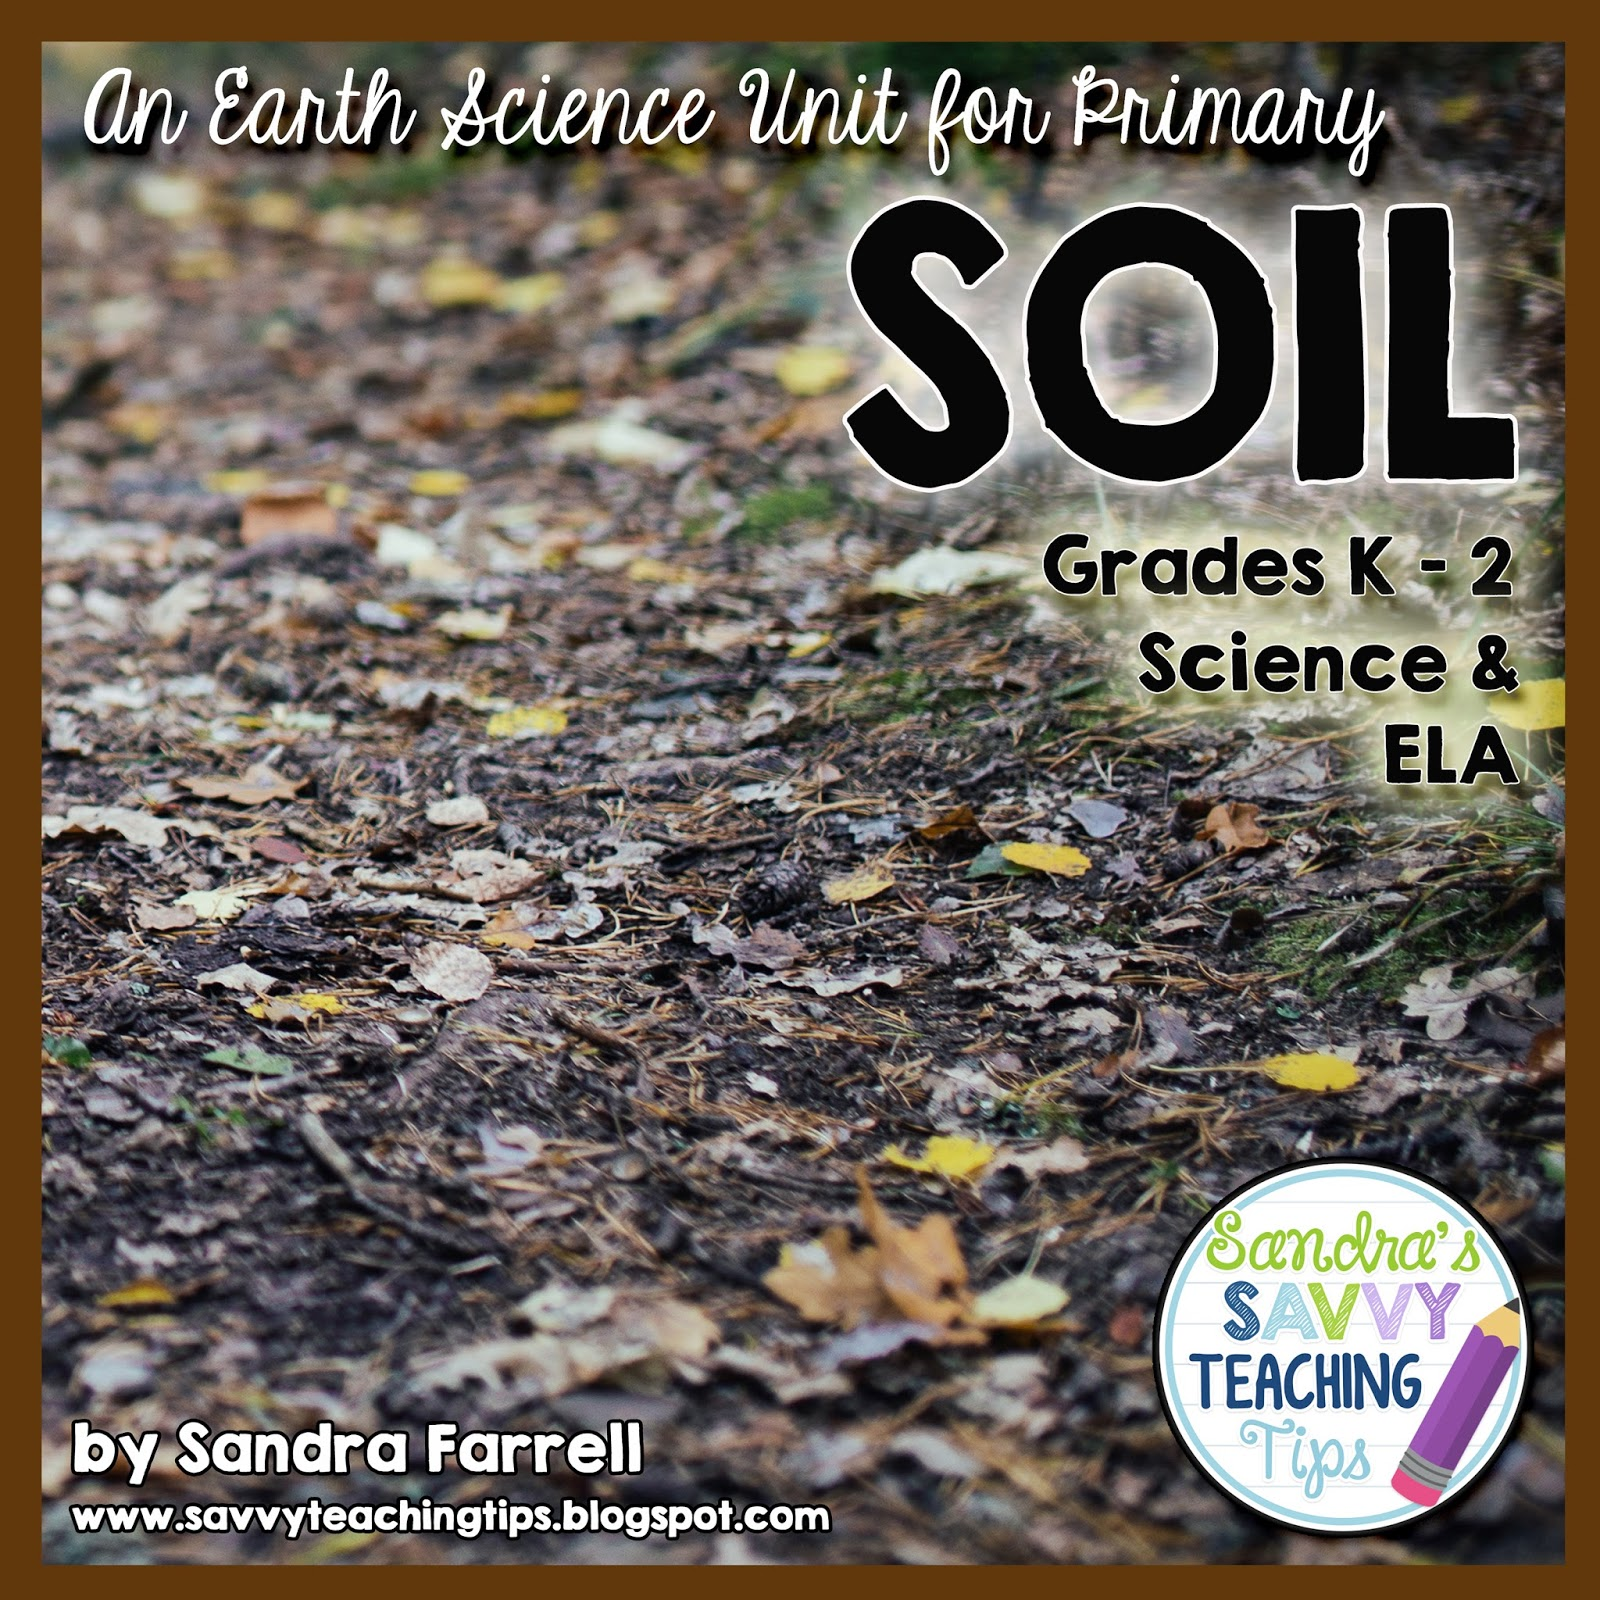 Soil a primary science unit savvy teaching tips for Soil science